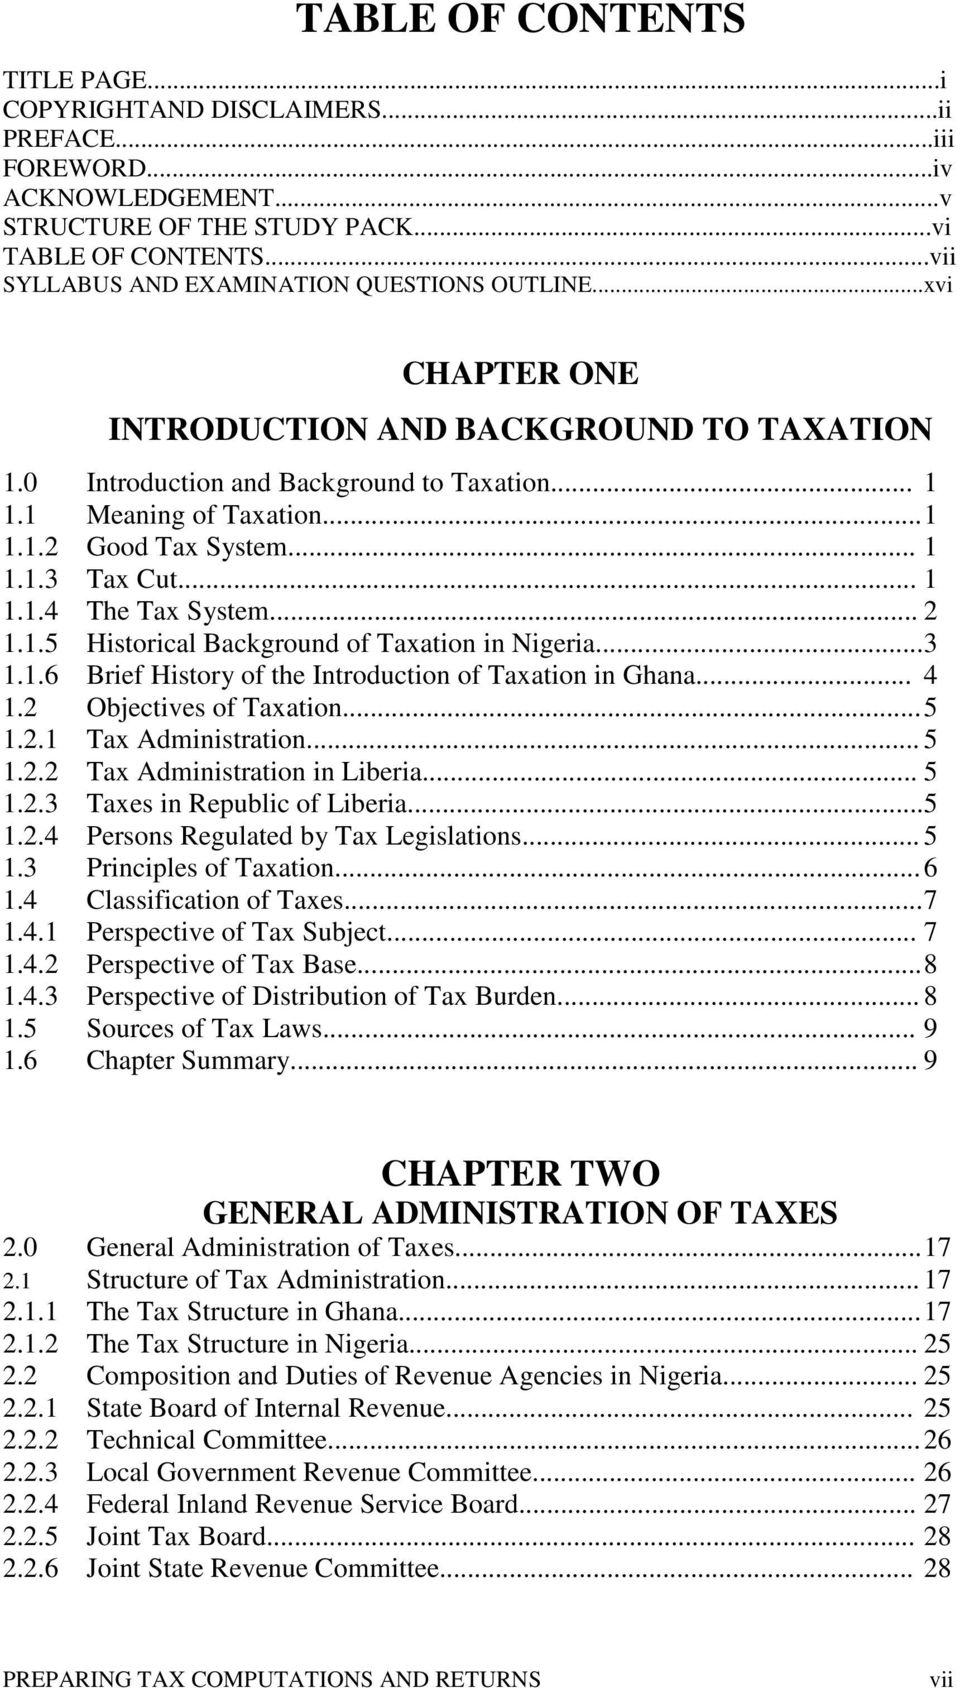 Impact Of Taxation On National Development